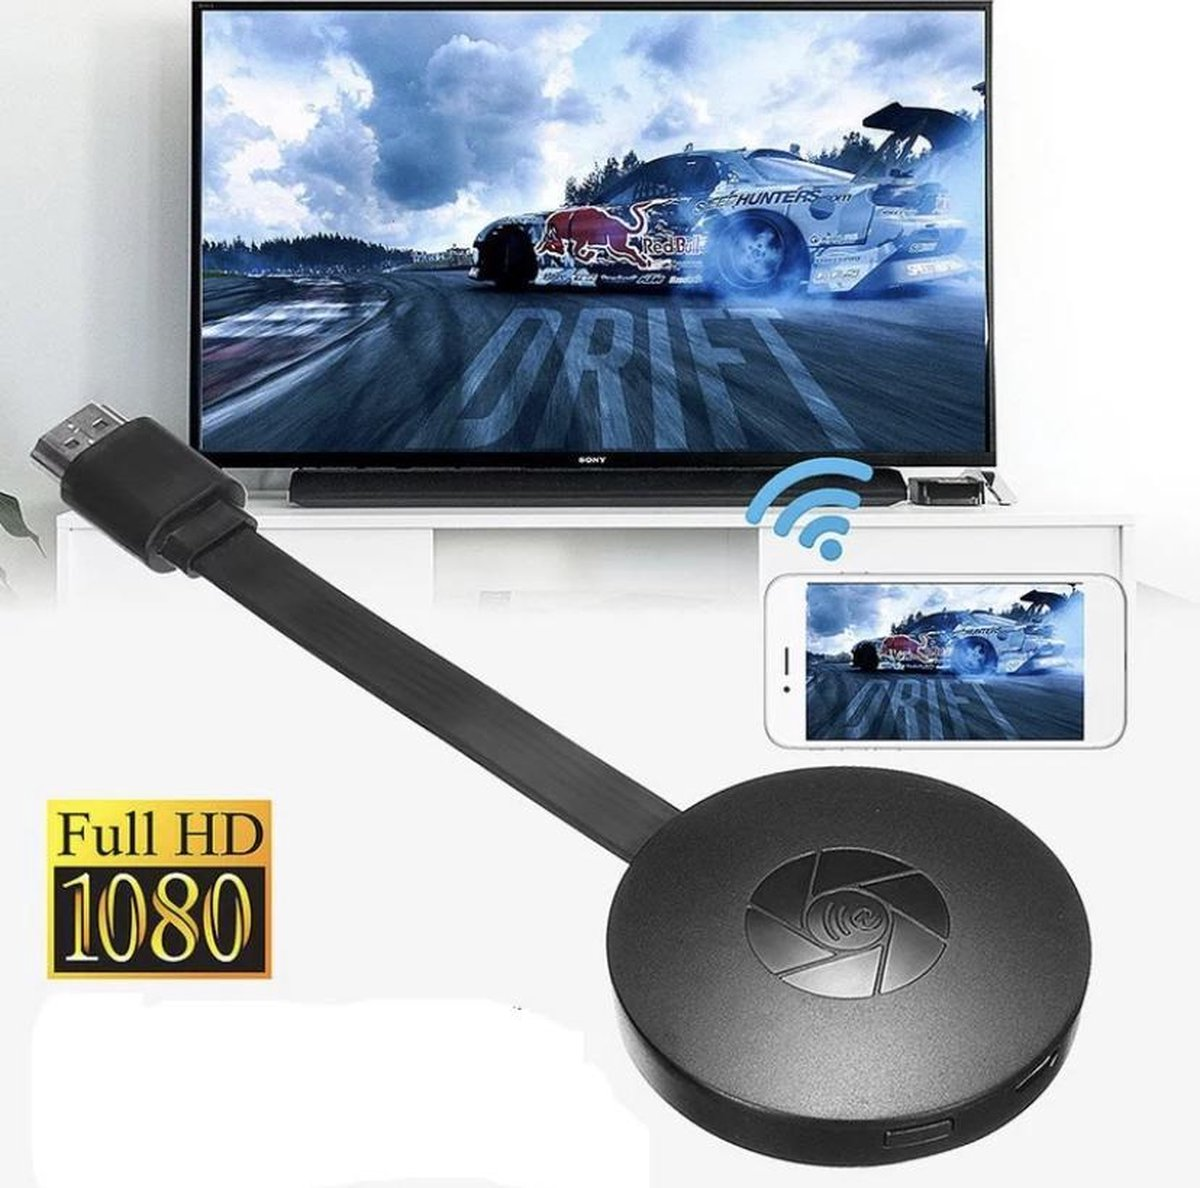 Wifi HDMI Dongle - Surround sound support - HD video streaming - Mediaplayer - 1080P - Tv stick